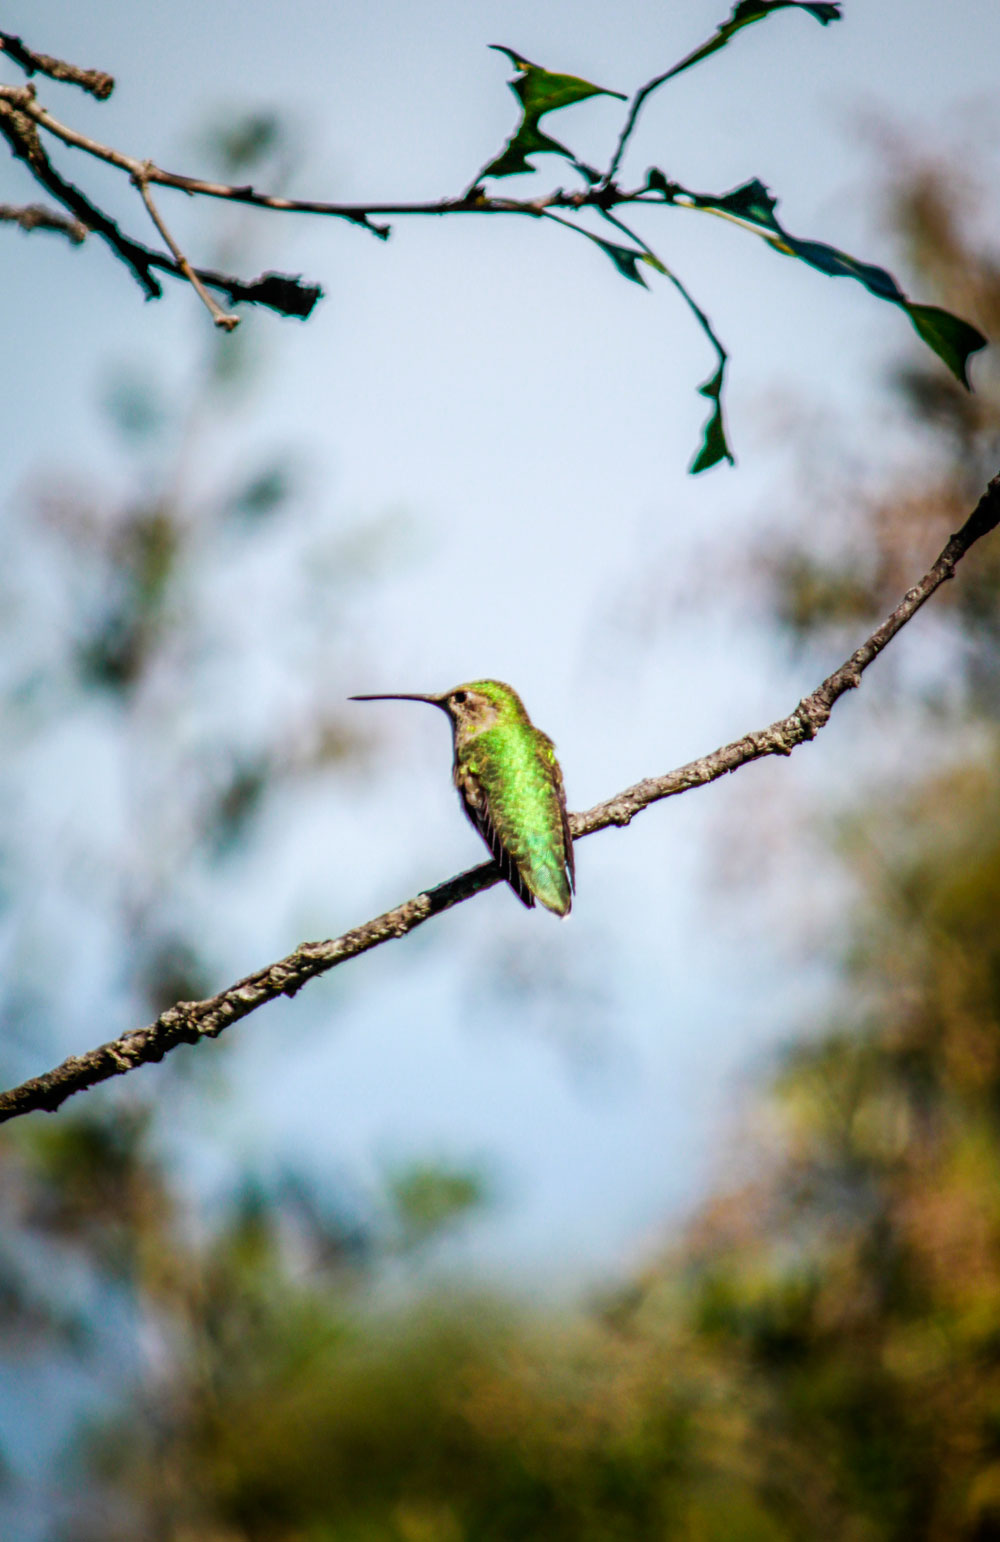 Green Violetear humming bird. Getting close to perfection. (Ezra Rodriguez/Borderzine.com)